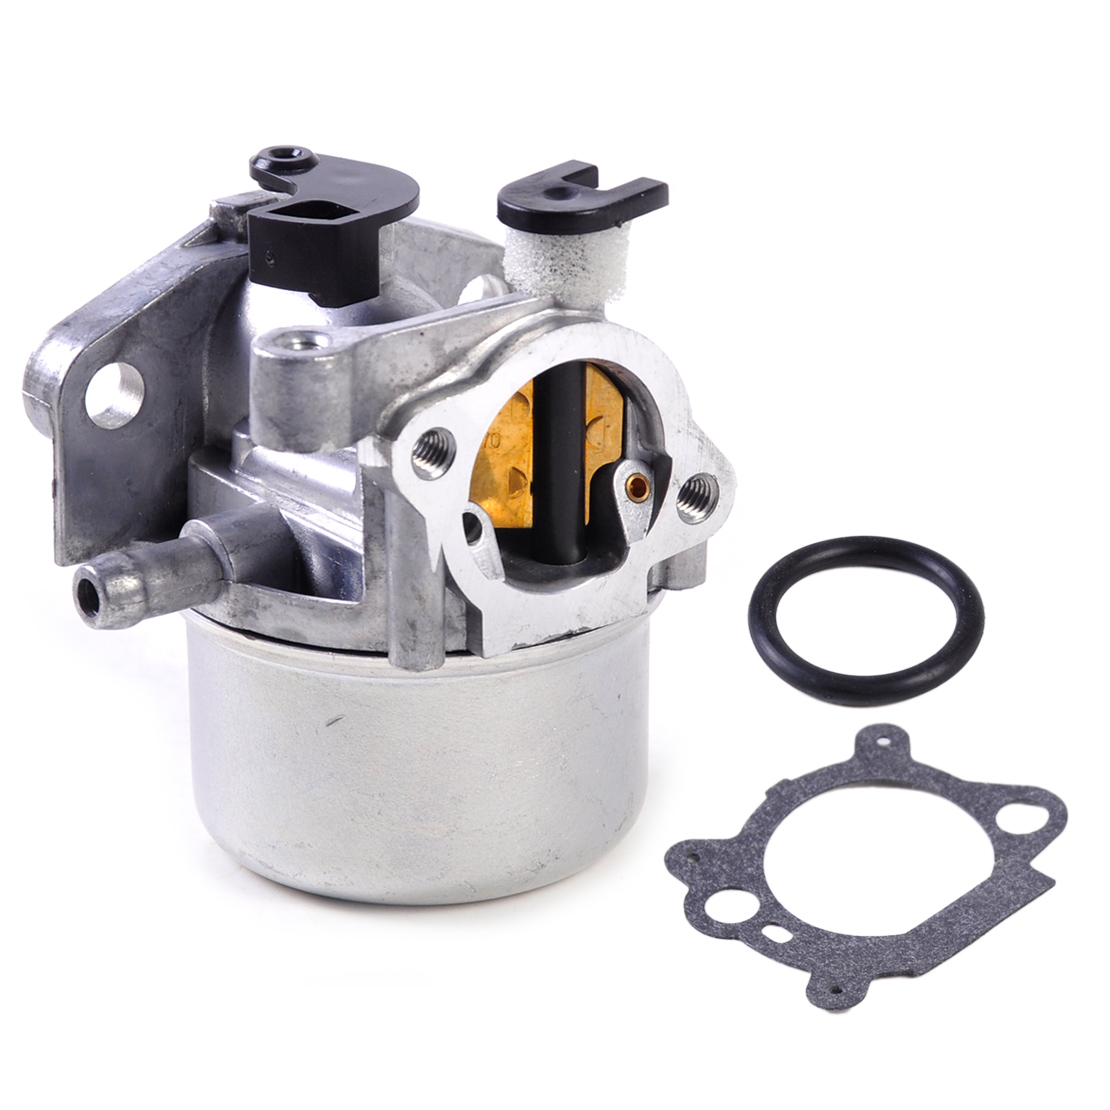 LETAOSK New Carburetor Fit For Briggs & Stratton Toro Craftsman Carb 799866 796707 794304 ReplacementAccessories